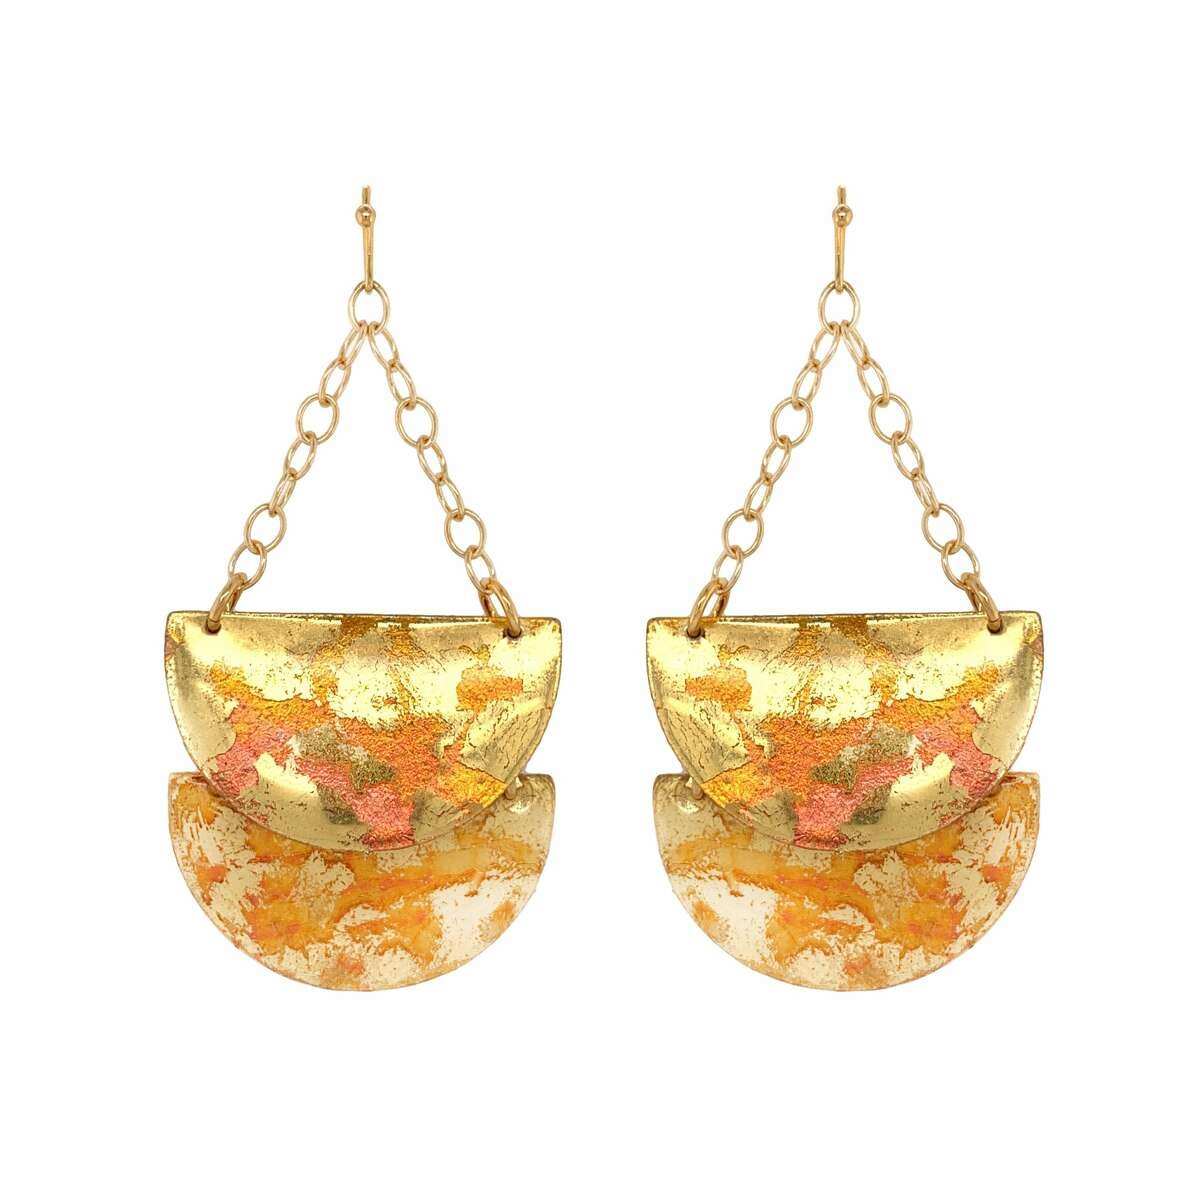 This pair of Astral Half Double semi circle earrings in 22K gold leaf and enamel from Evocateur in Norwalk. Barbara Ross-Innamorati, founder and designer of Norwalk's Évocateur, said she stepped up her social media presence in 2020 and did a variety of special events on Facebook/Instagram Live along with special promotions and giveaways.